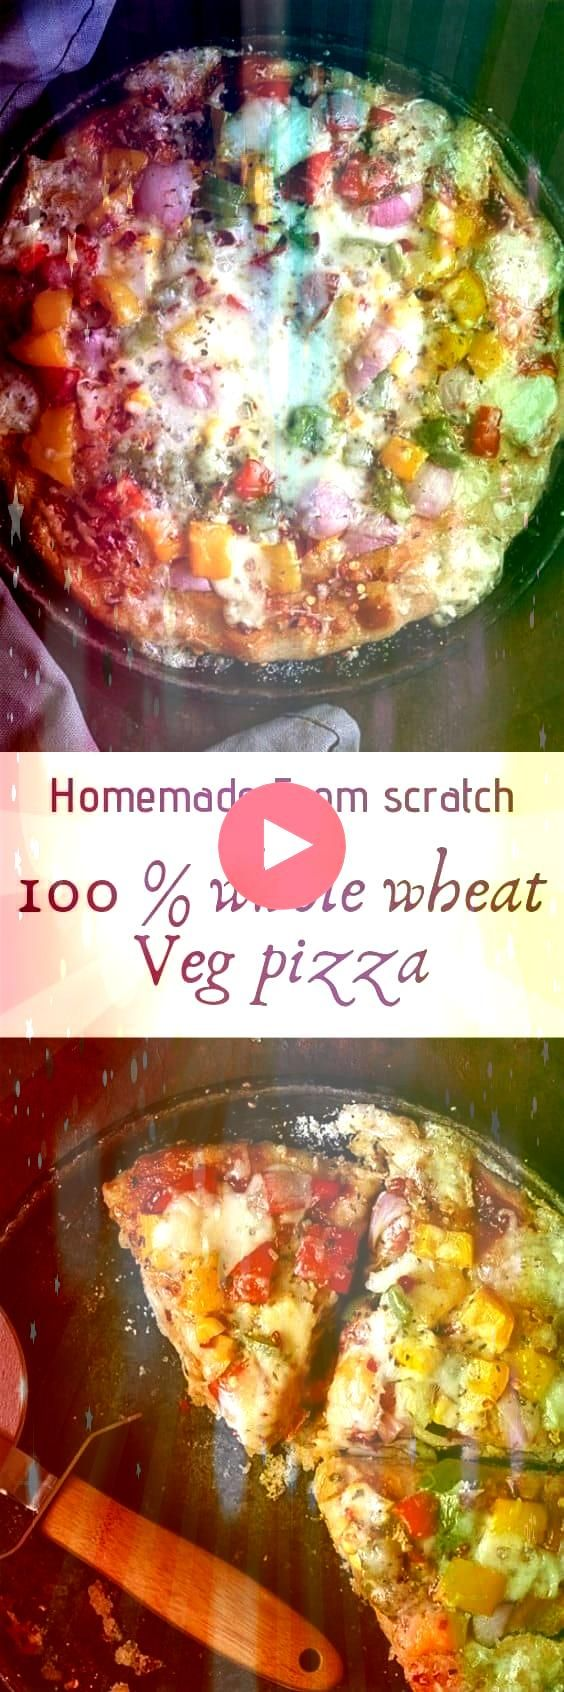 wheat vegetable pizza a delicious and healthier take on veg pizza from sc Whole wheat vegetable pizza a delicious and healthier take on veg pizza from sc  Whole wheat veg...